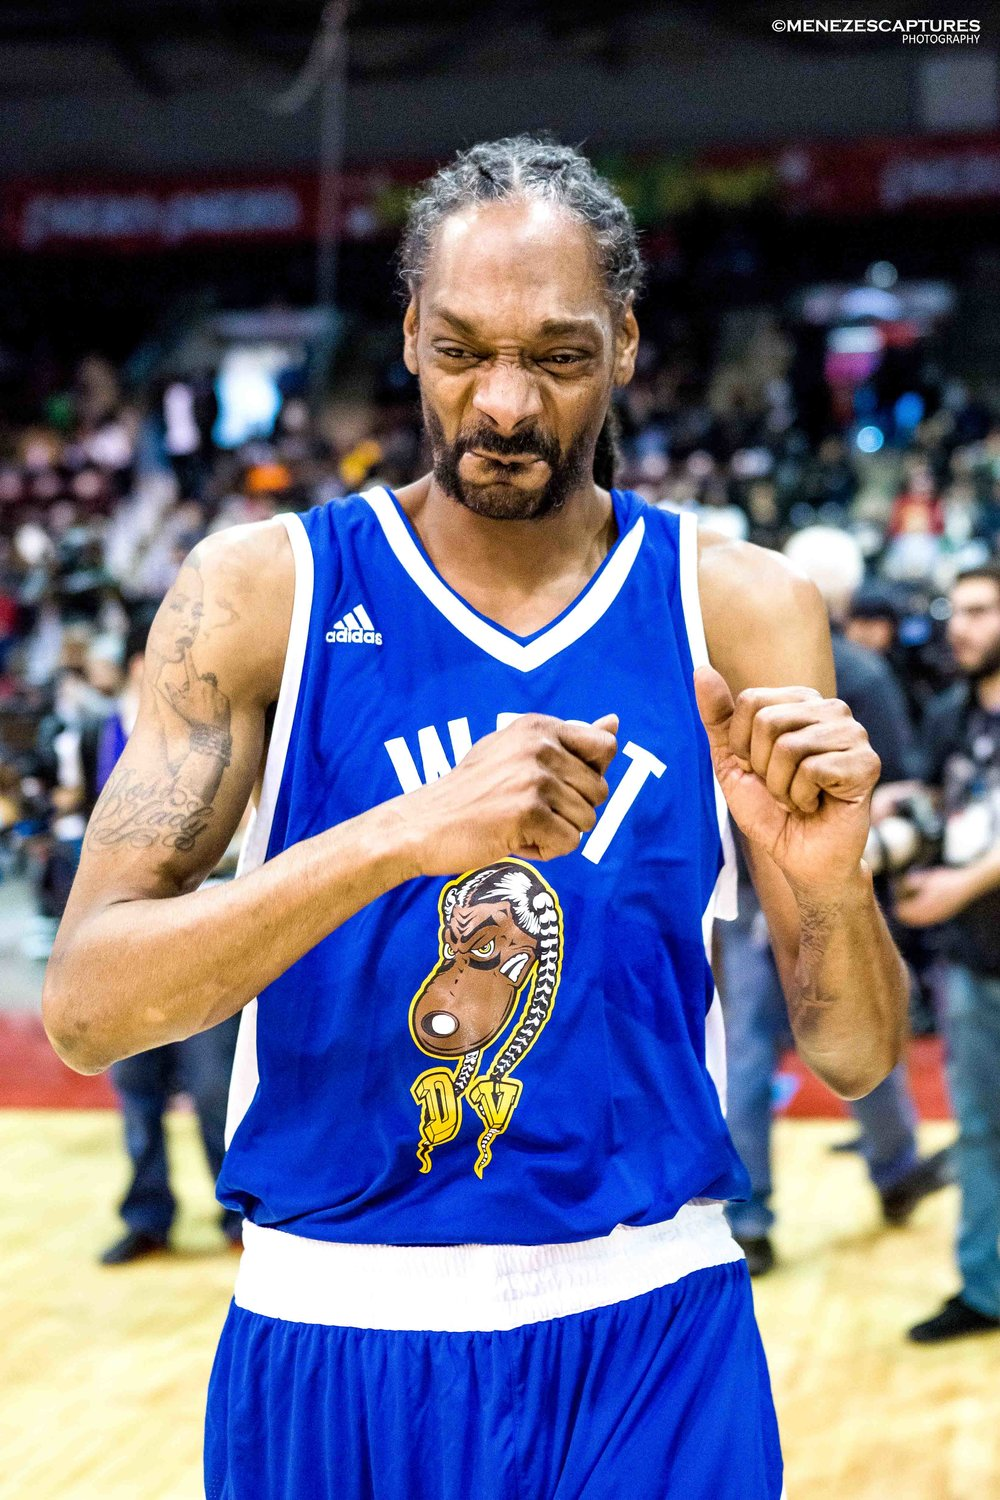 Snoop Dogg at the 2017 NBA All Star Game in Toronto